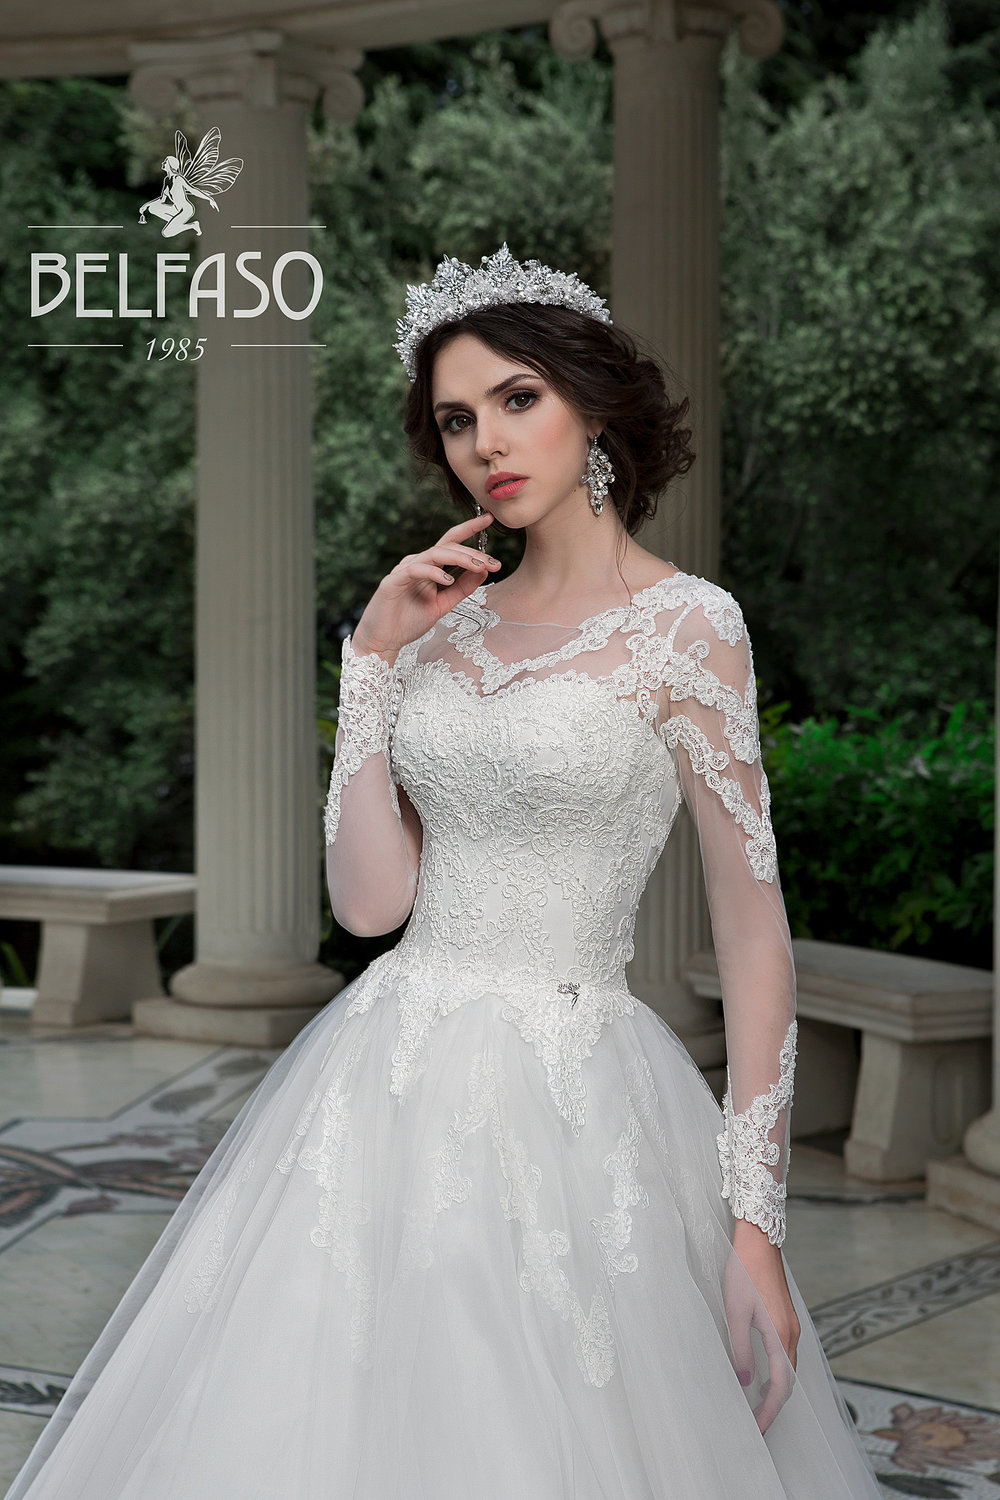 SABIRA wedding dress by BELFASO